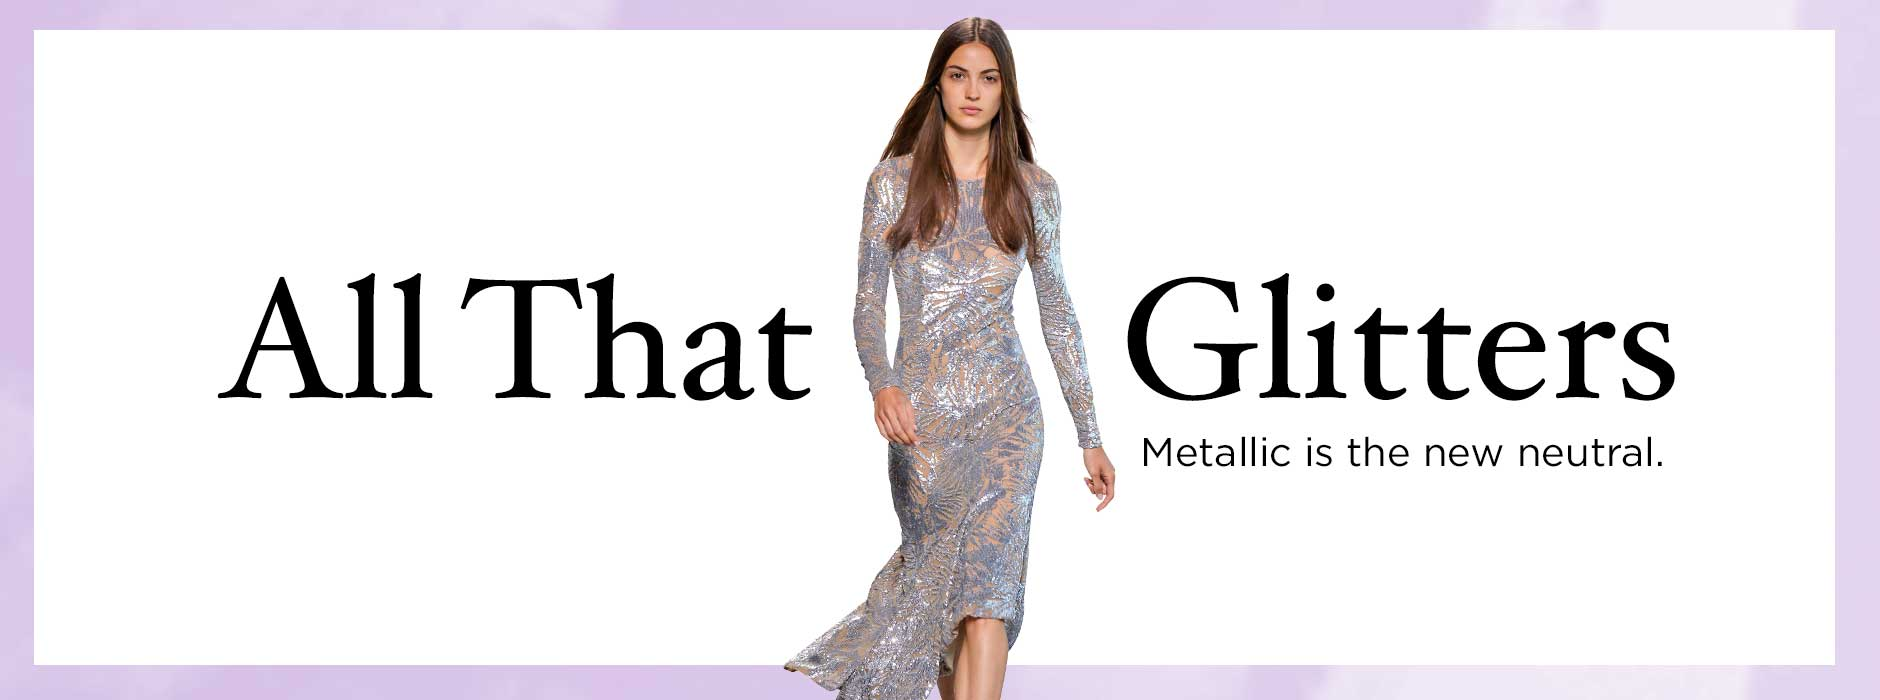 Spring Collections - Trend: All That glitters